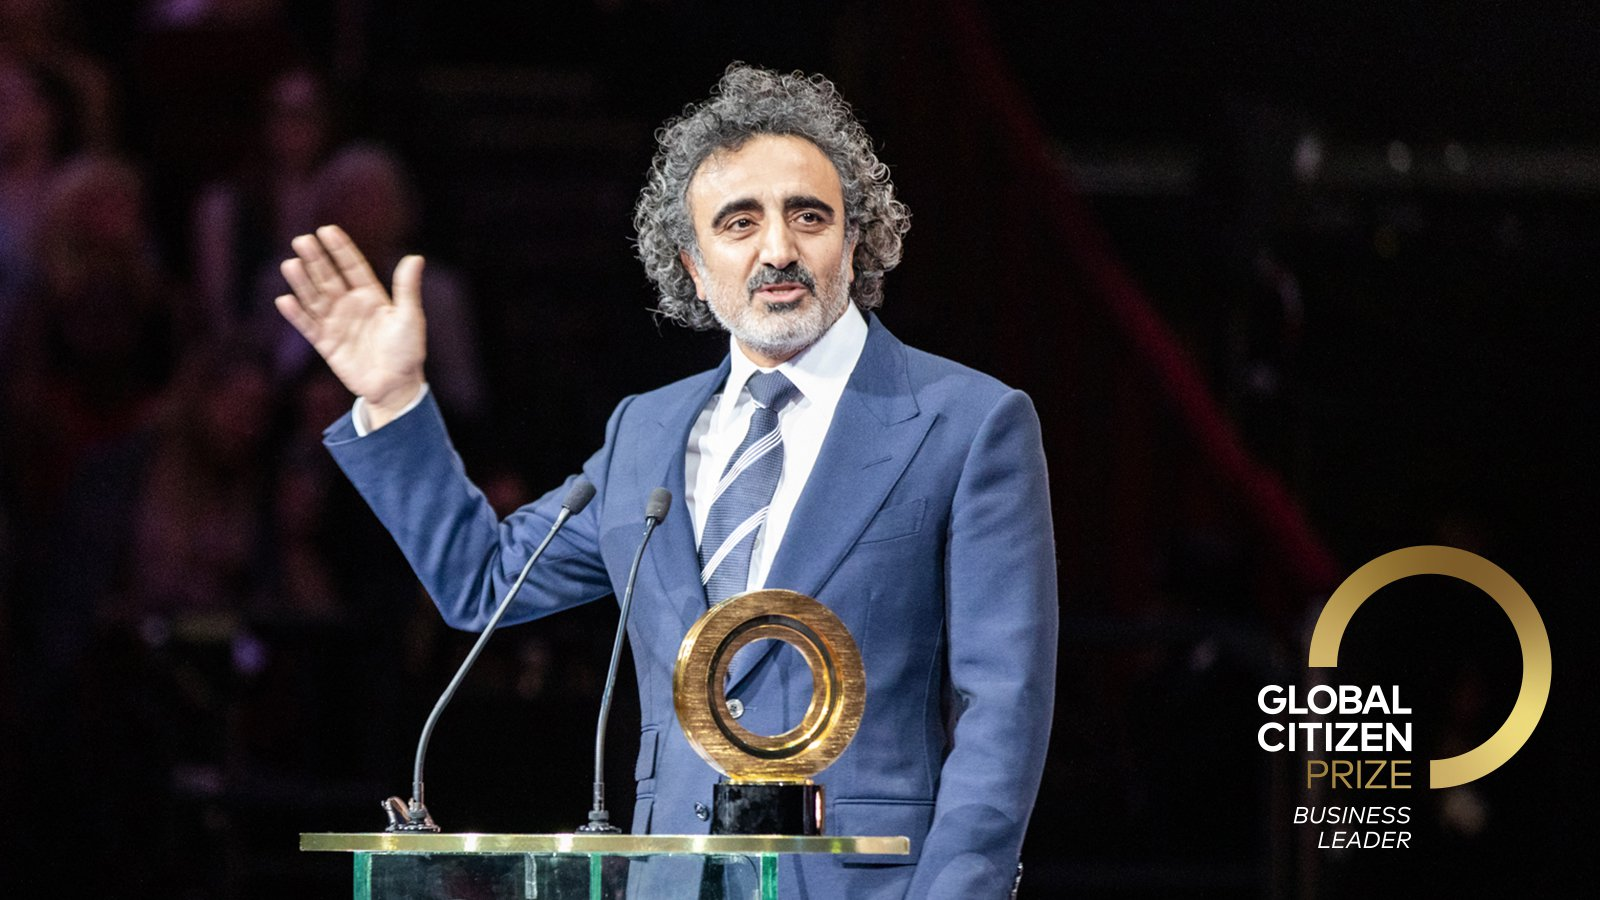 Businesss Leader of the Year Award Winner 2019 - Hamdi Ulukaya